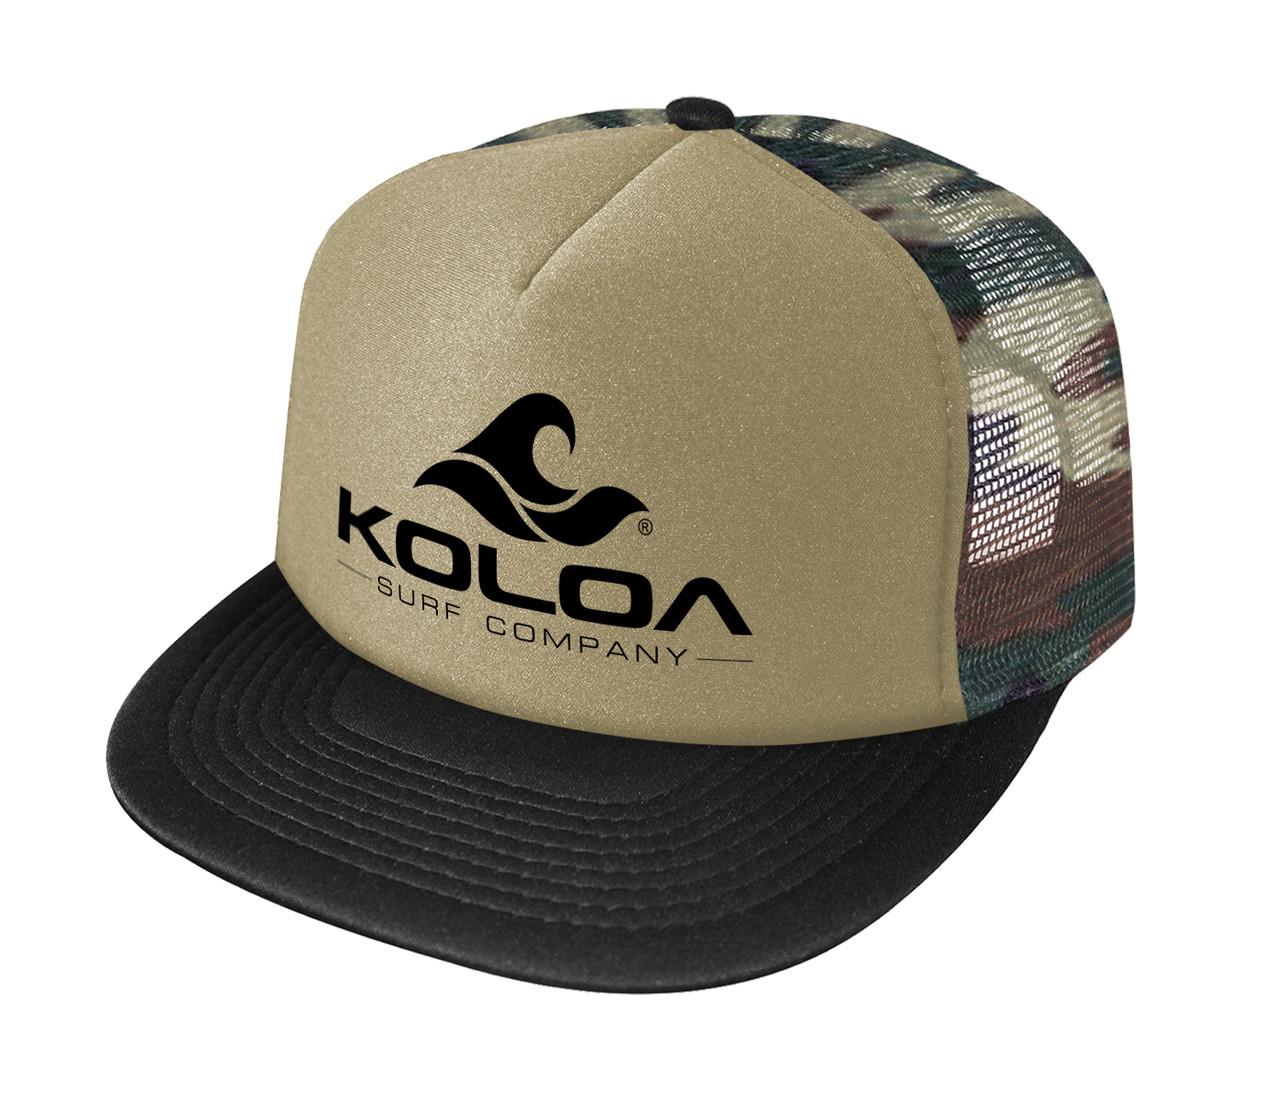 acff4e16d80 Koloa Surf Co. Wave Logo Poly-Foam Mesh Snapback High Profile ...